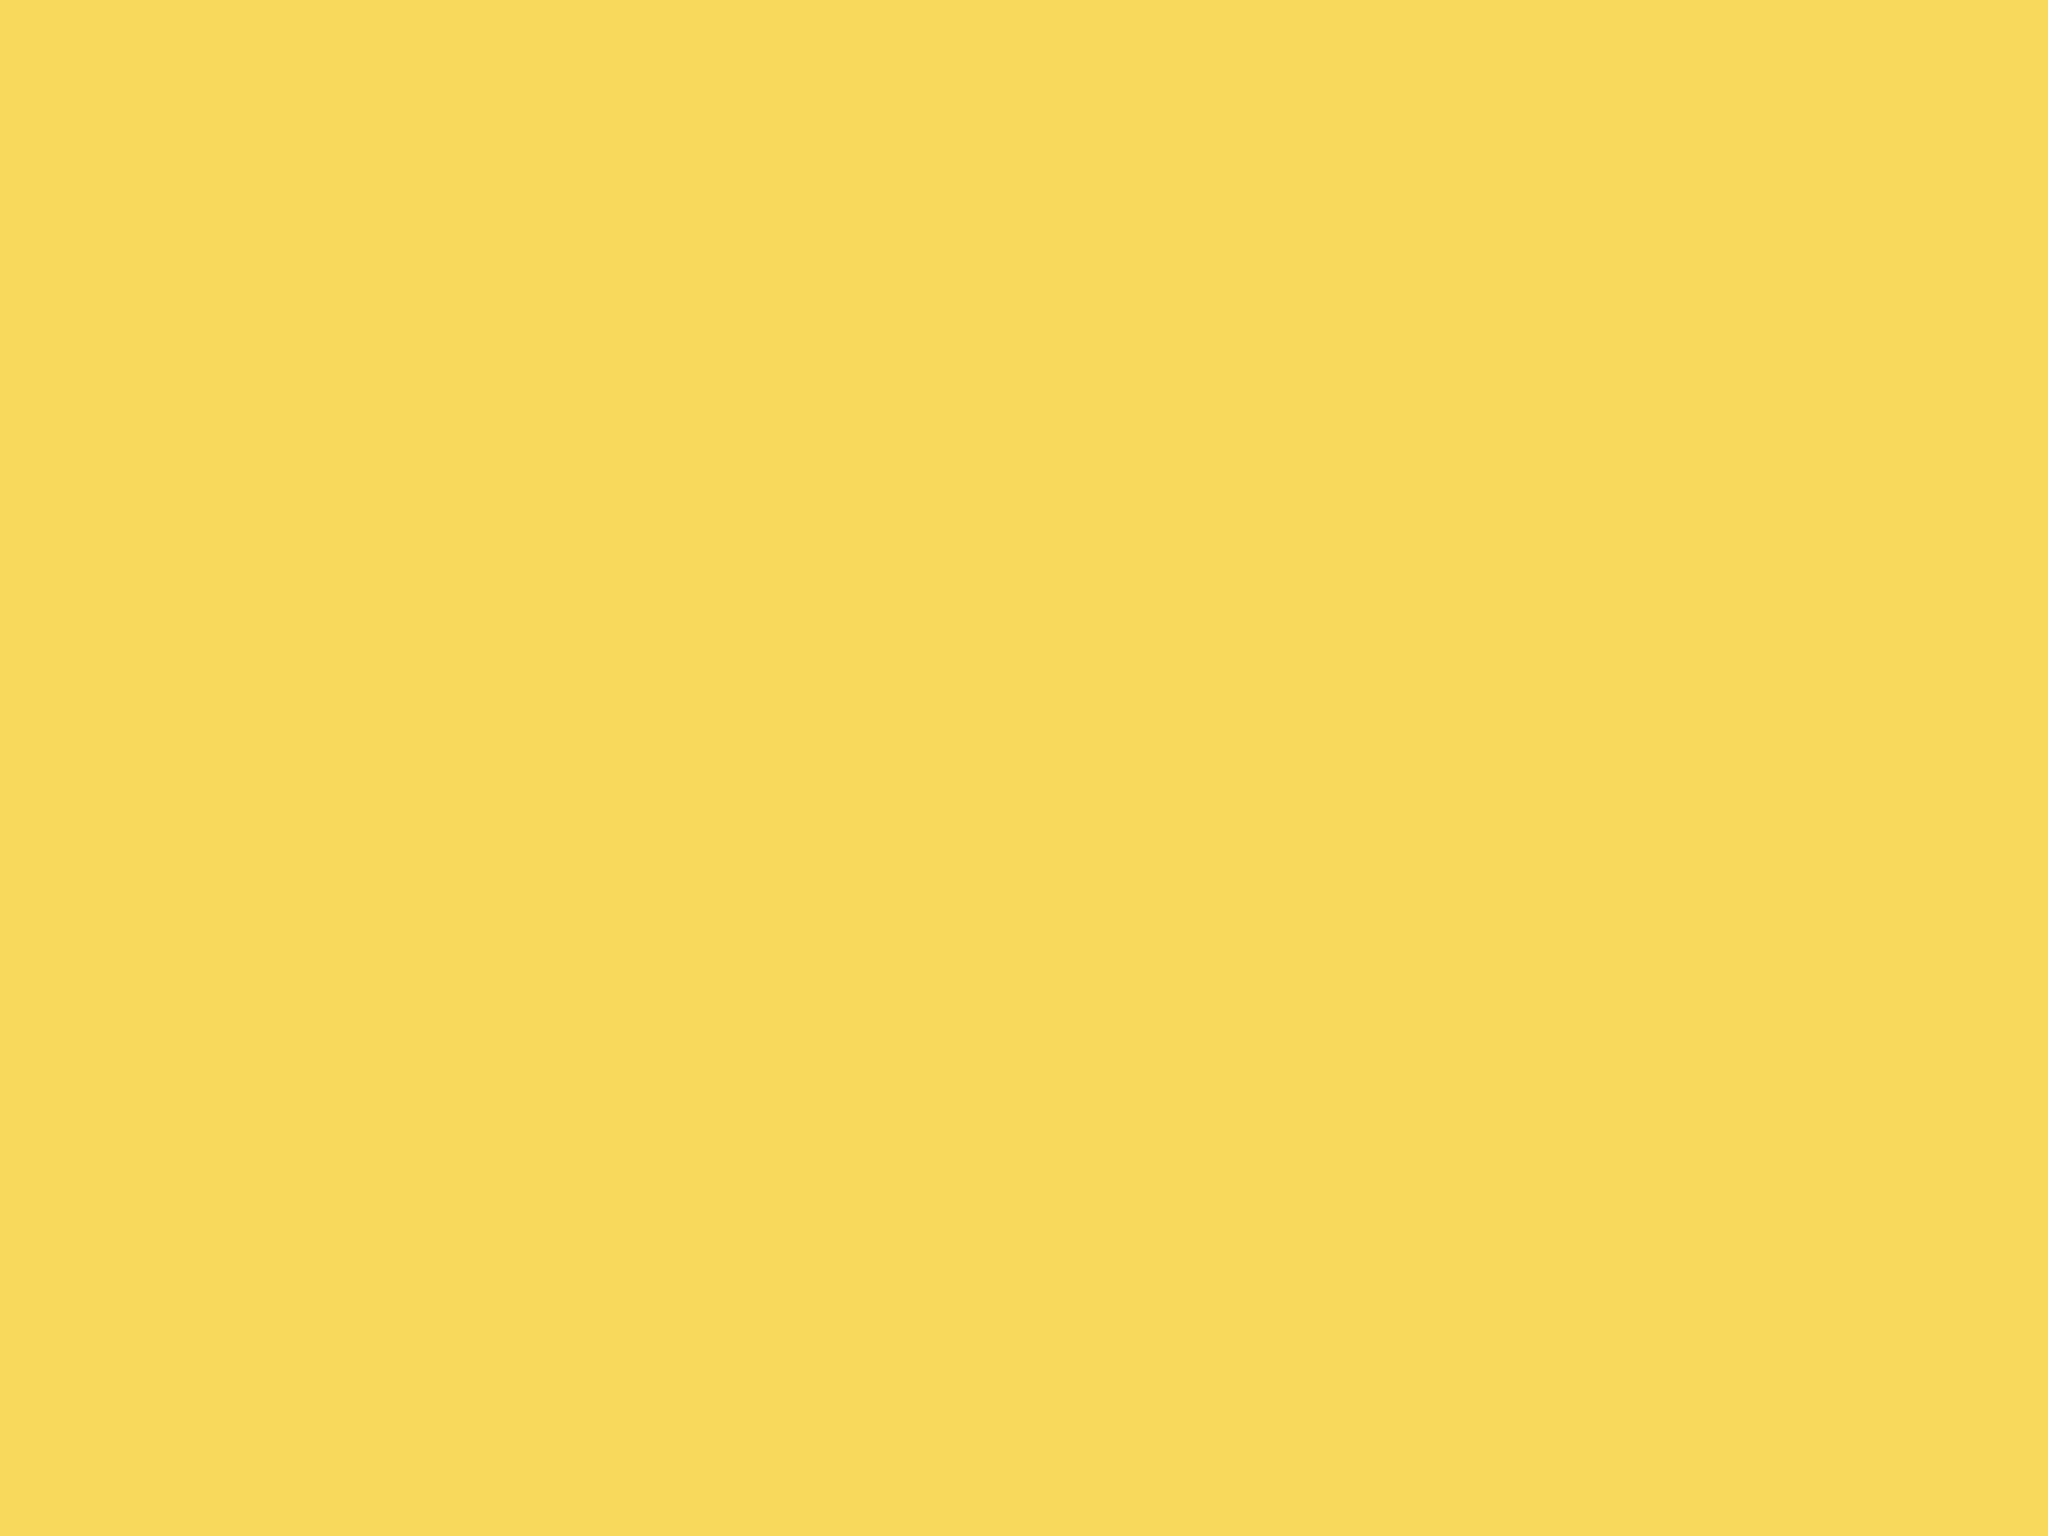 2048x1536 Royal Yellow Solid Color Background